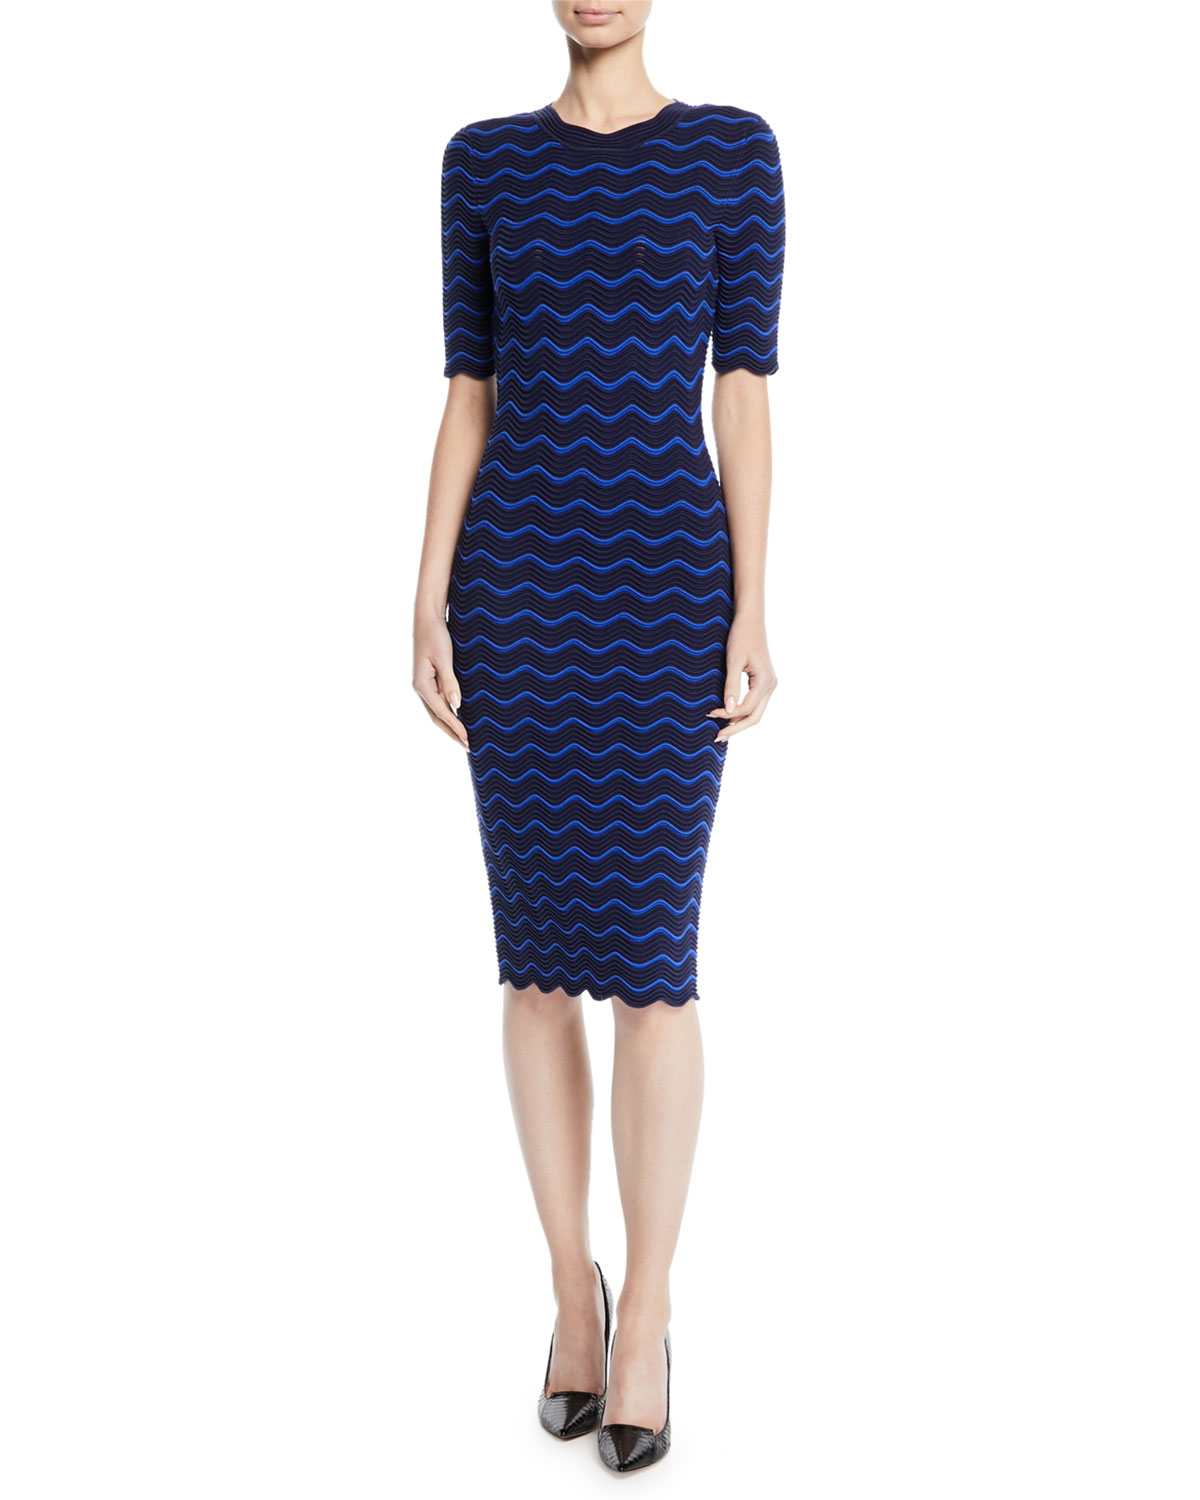 Textured Wave Knit Sheath Dress